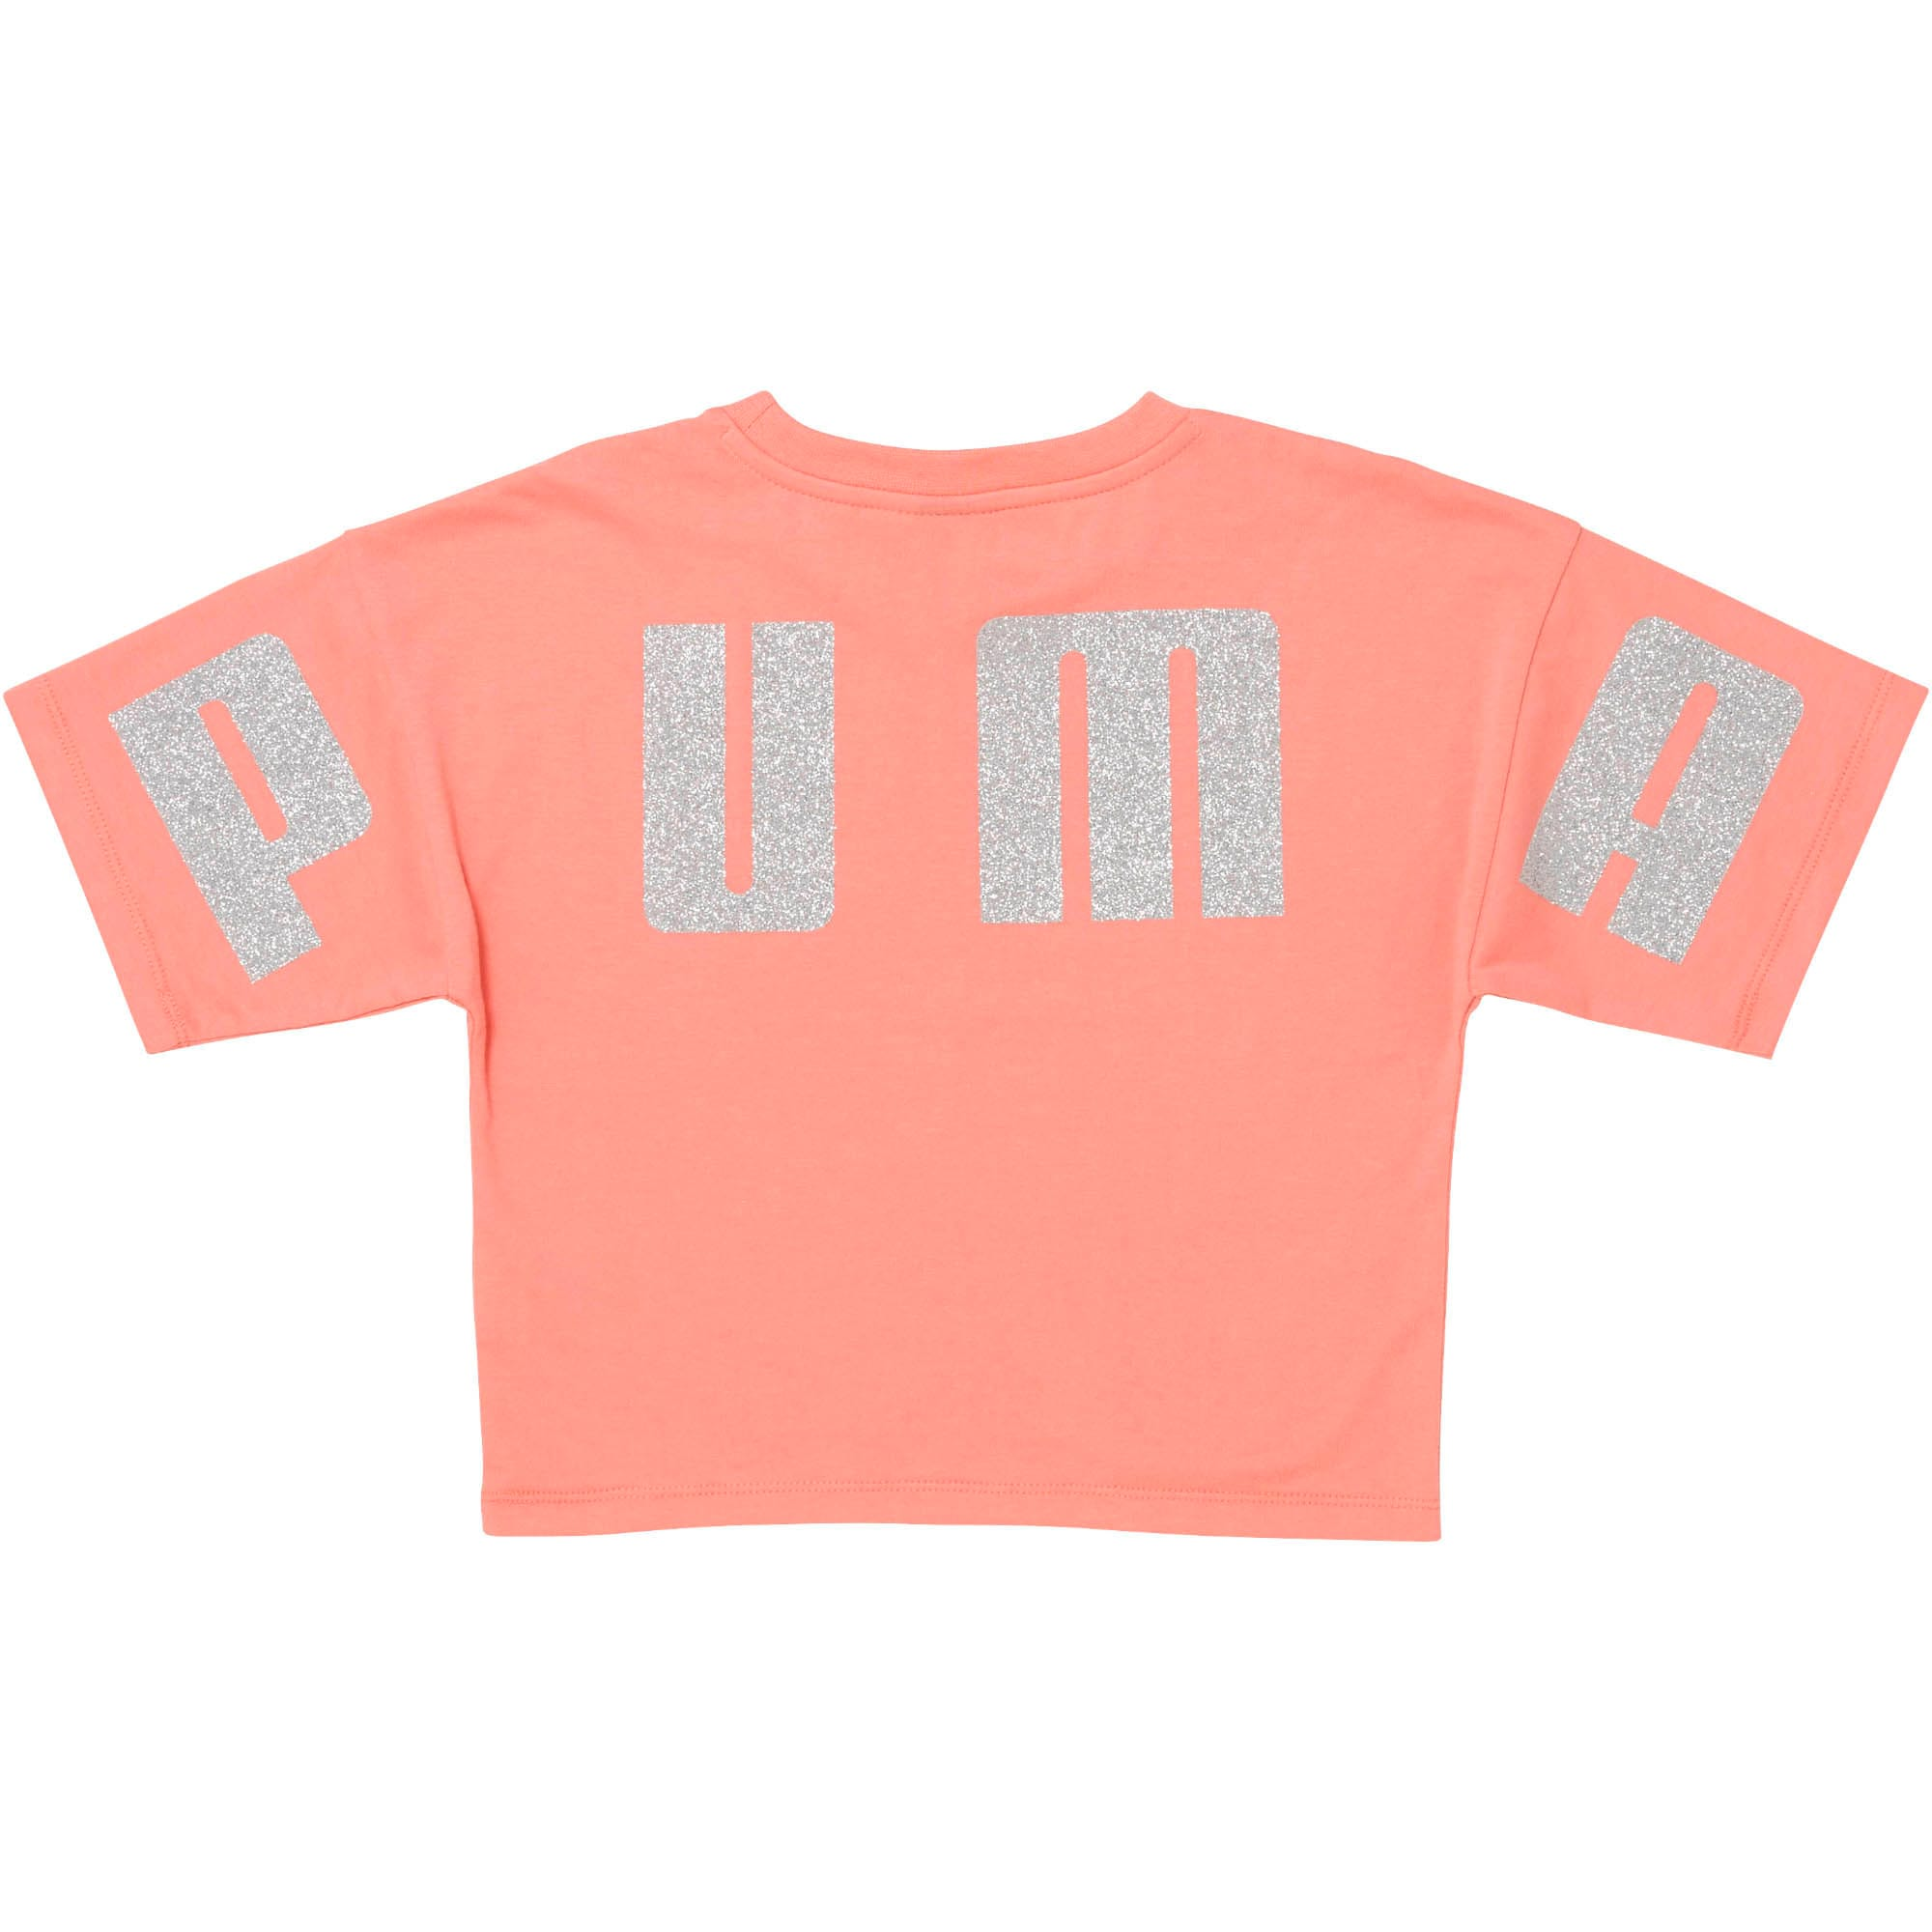 Little Kids' Top, SHELL PINK, large